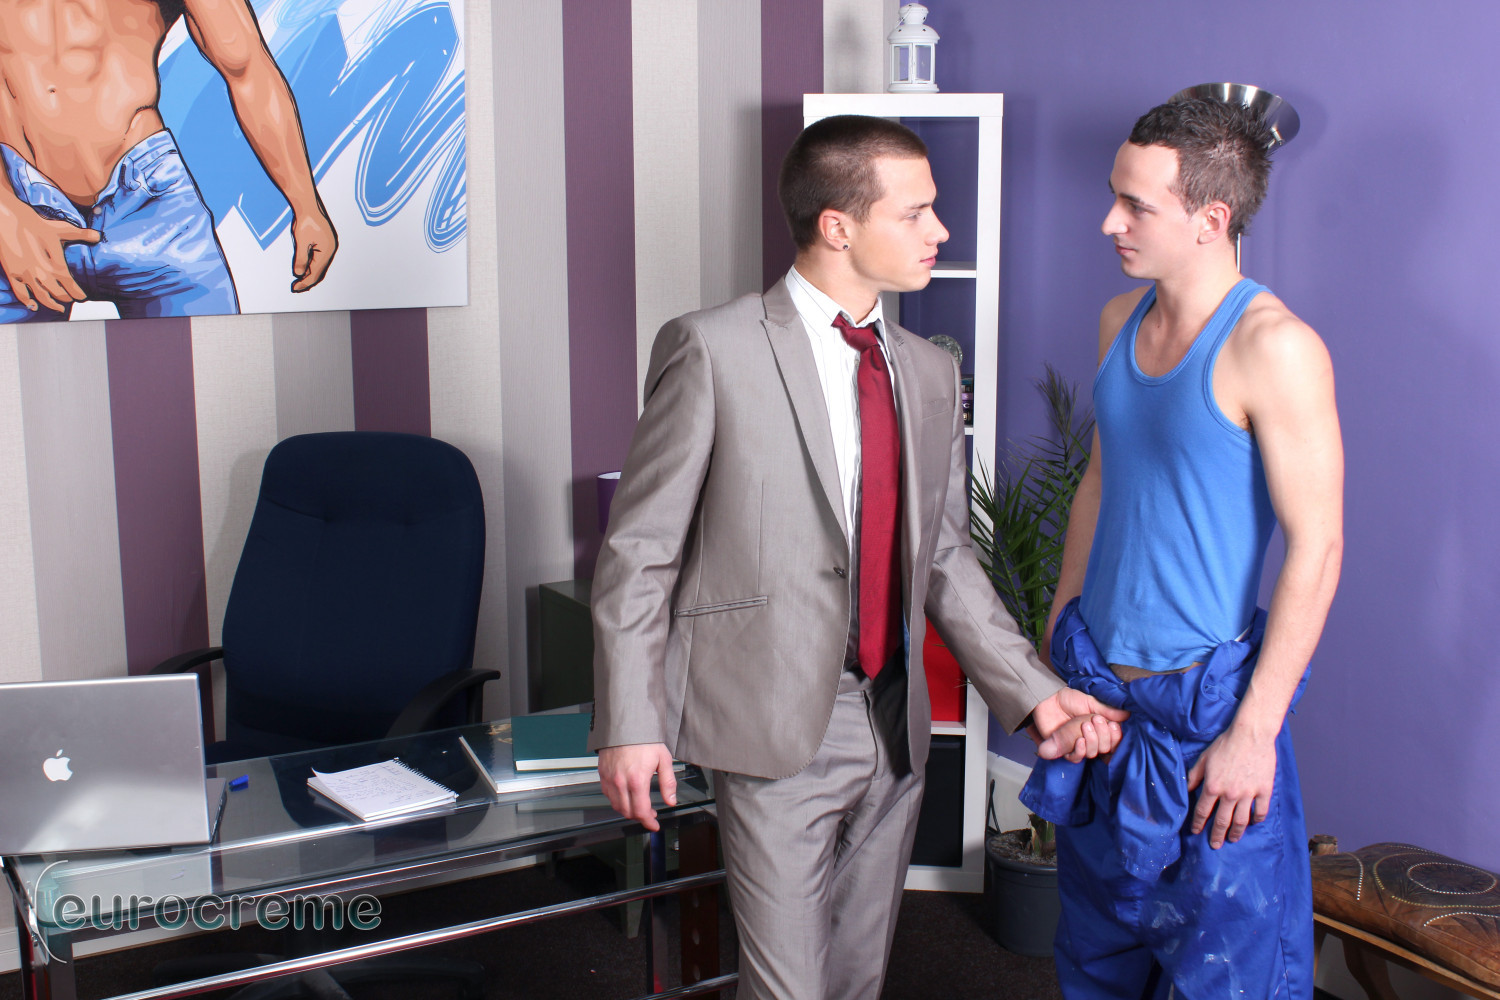 Eurocreme-Billy-Rubens-and-Luke-Desmond-big-cock-twinks-fucking-Amateur-Gay-Porn-01 Billy Rubens and Luke Desmond: Suit and Tie Twink Fucking The Handyman